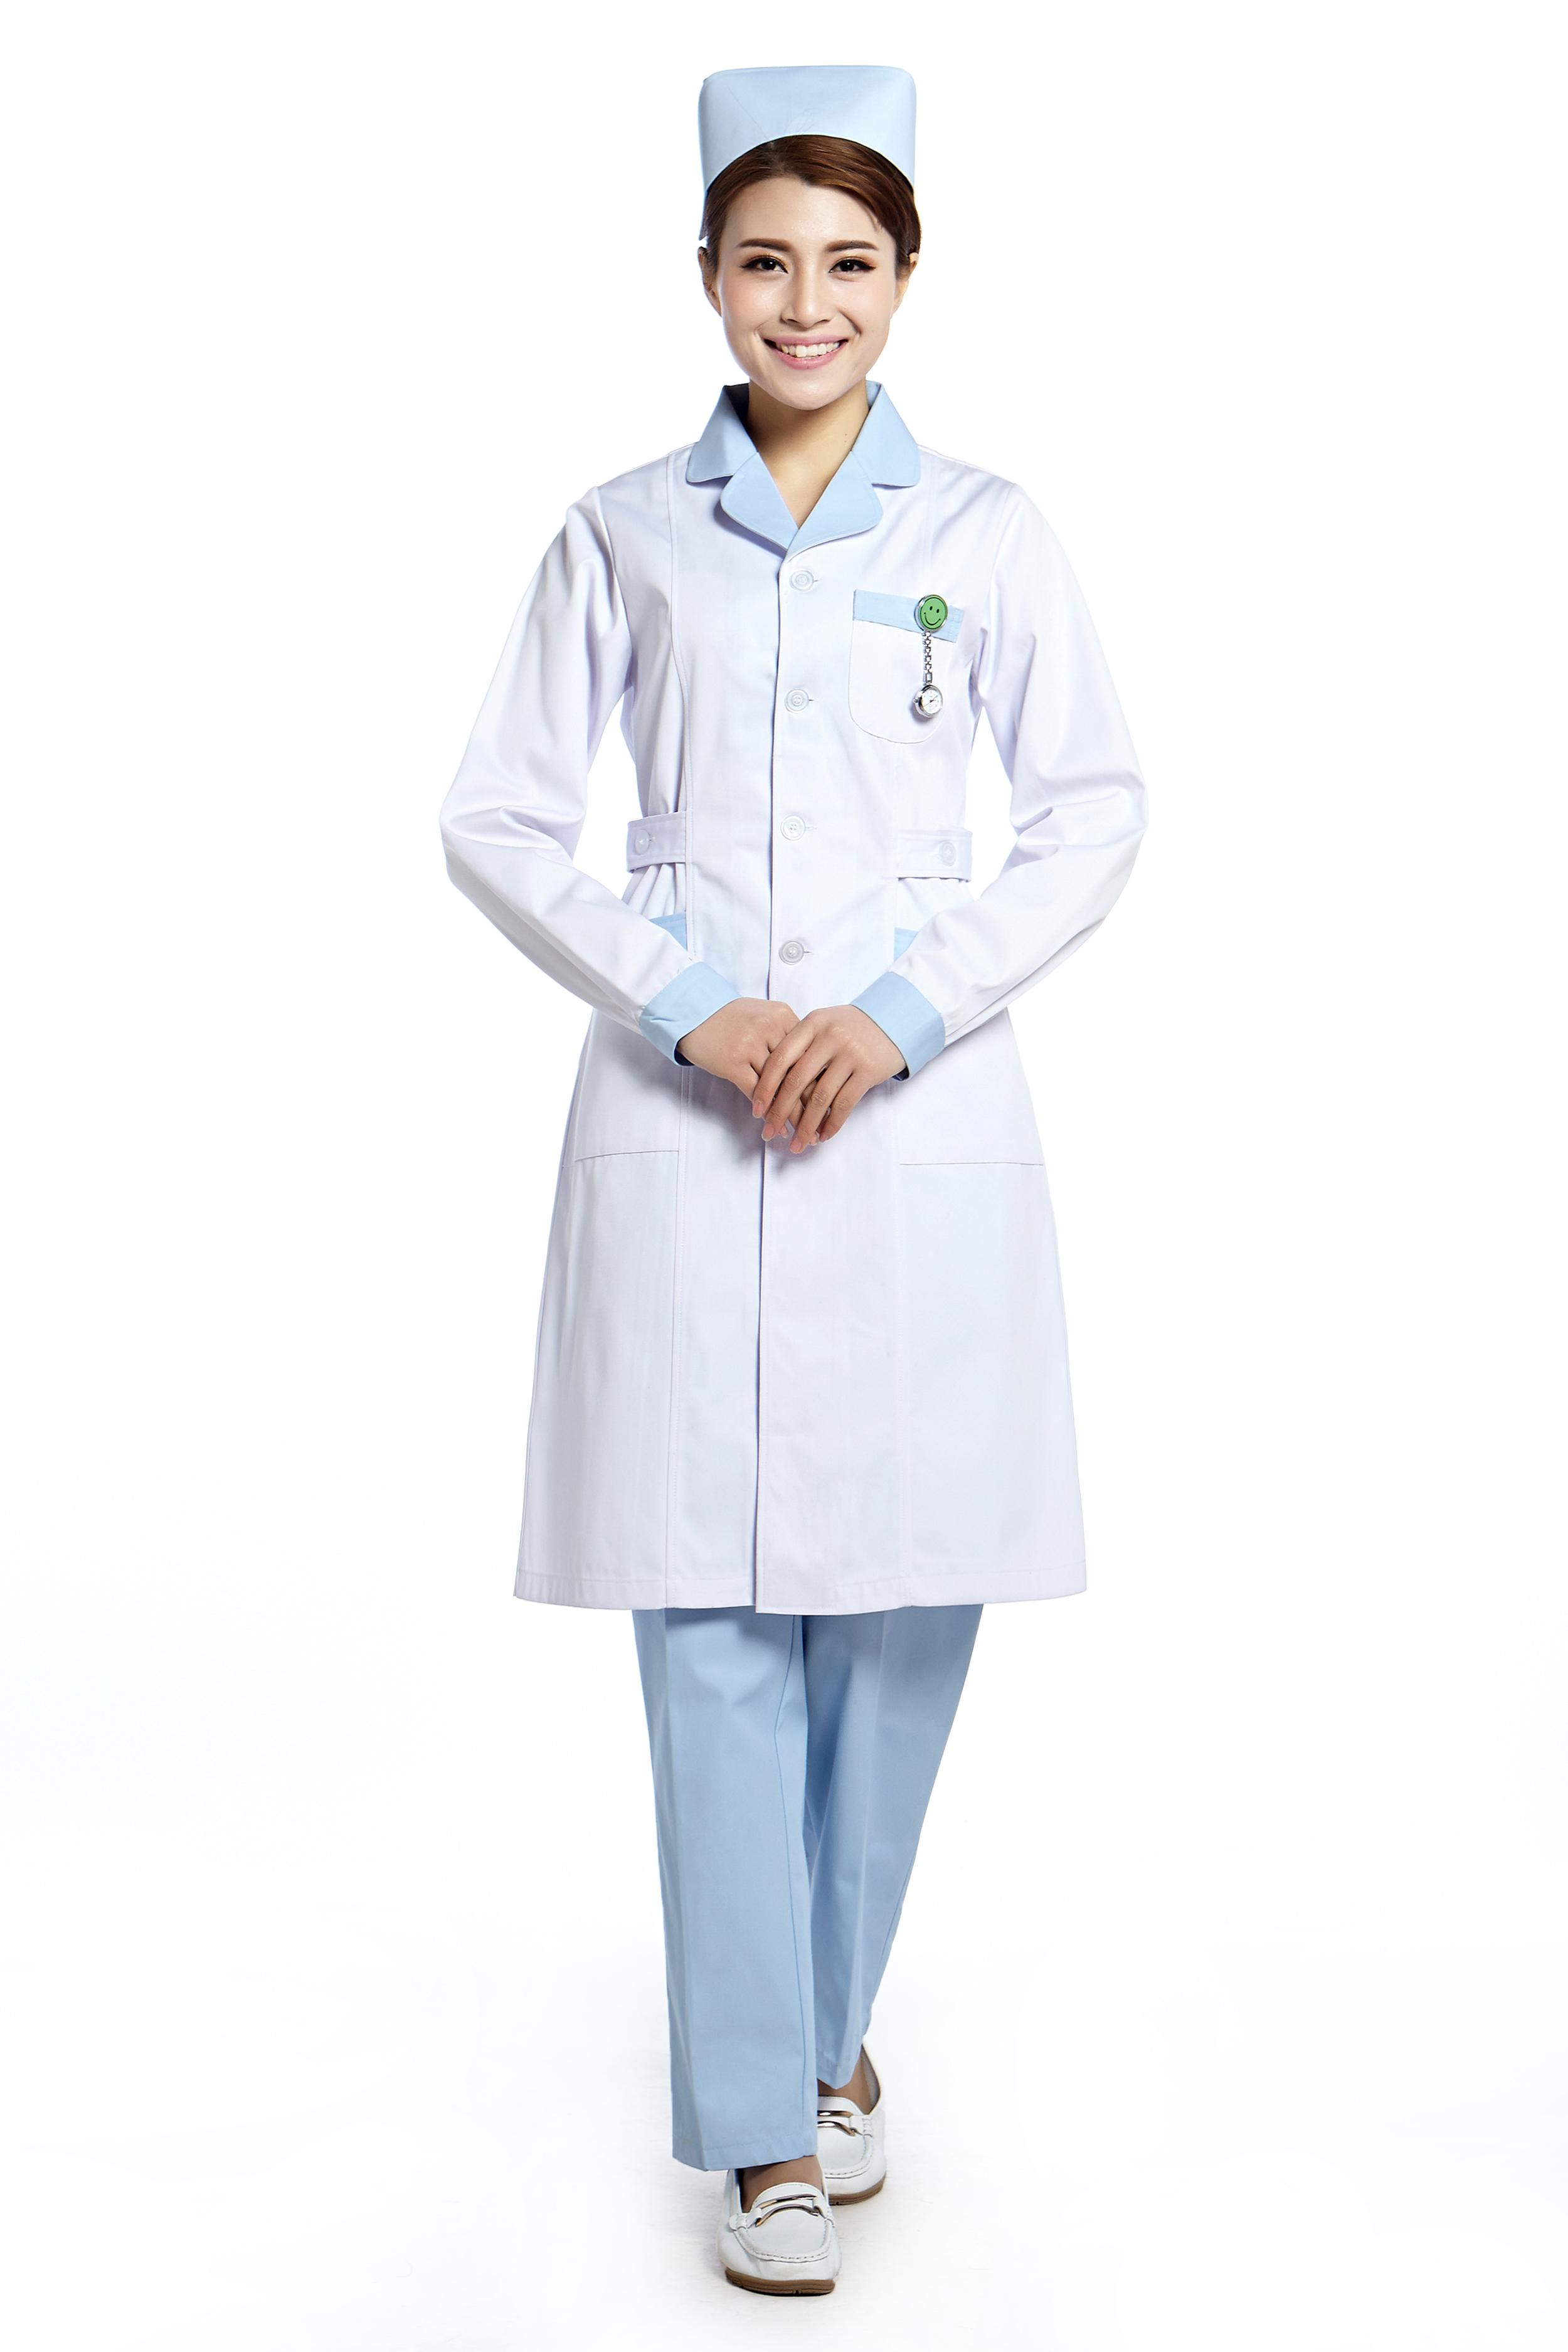 uniform dating discount for nurses Save up to $10 with 35 lydias uniforms coupons, promo codes or sales for may 2018 today's top discount: $10 off your next order of $50+.